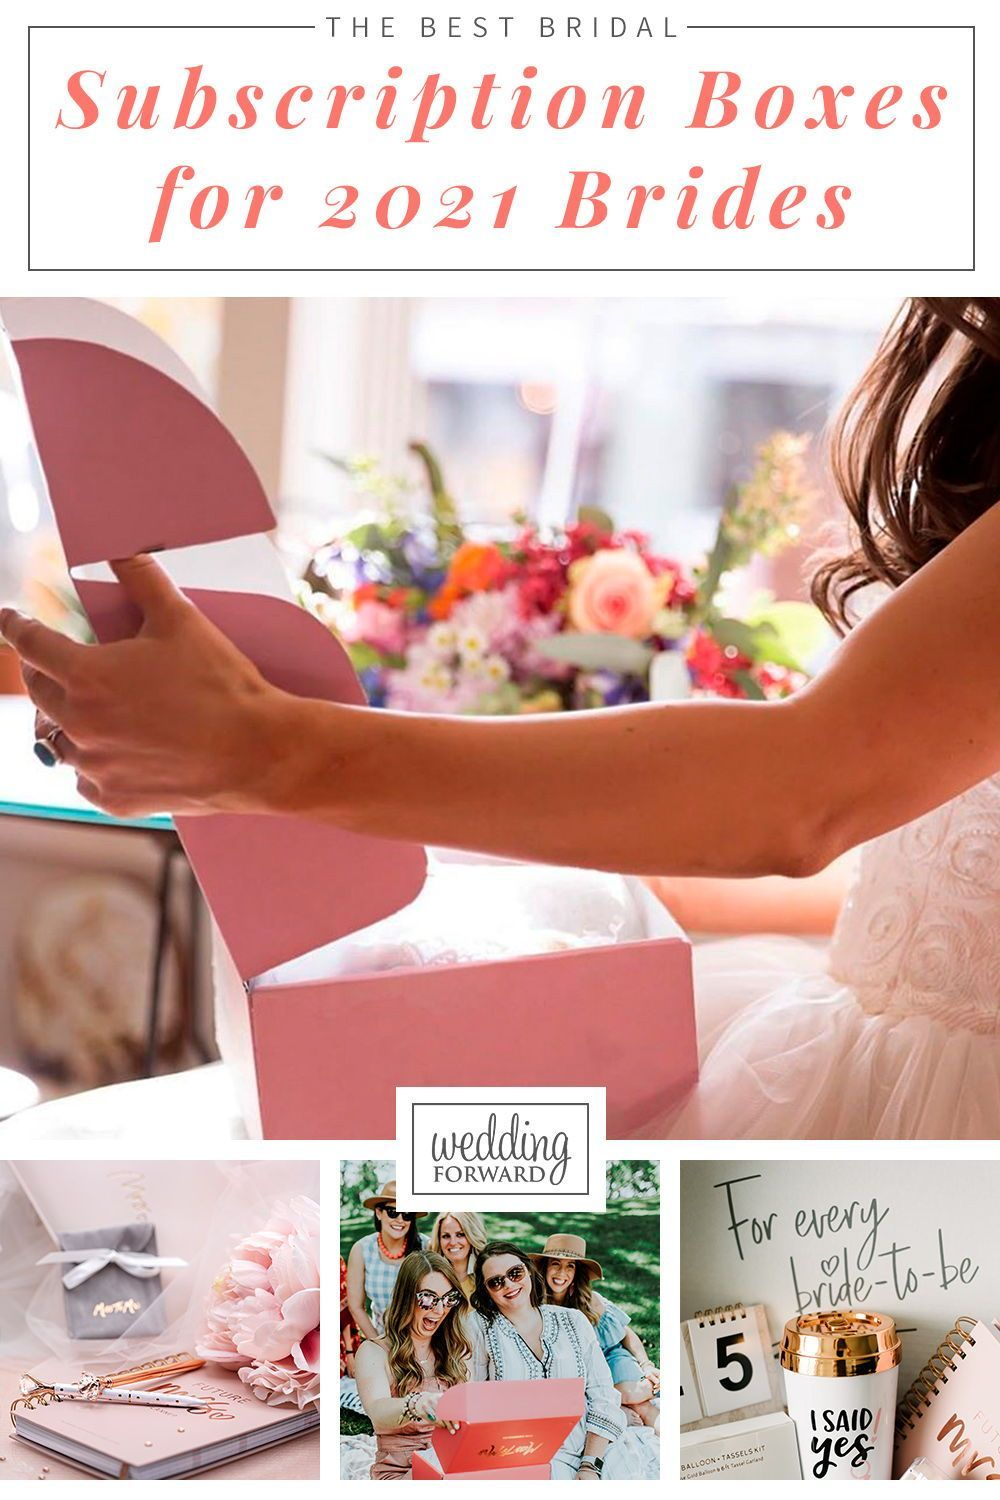 Best Subscription Boxes 2021 The Best Bridal Subscription Boxes For 2021 Brides in 2020